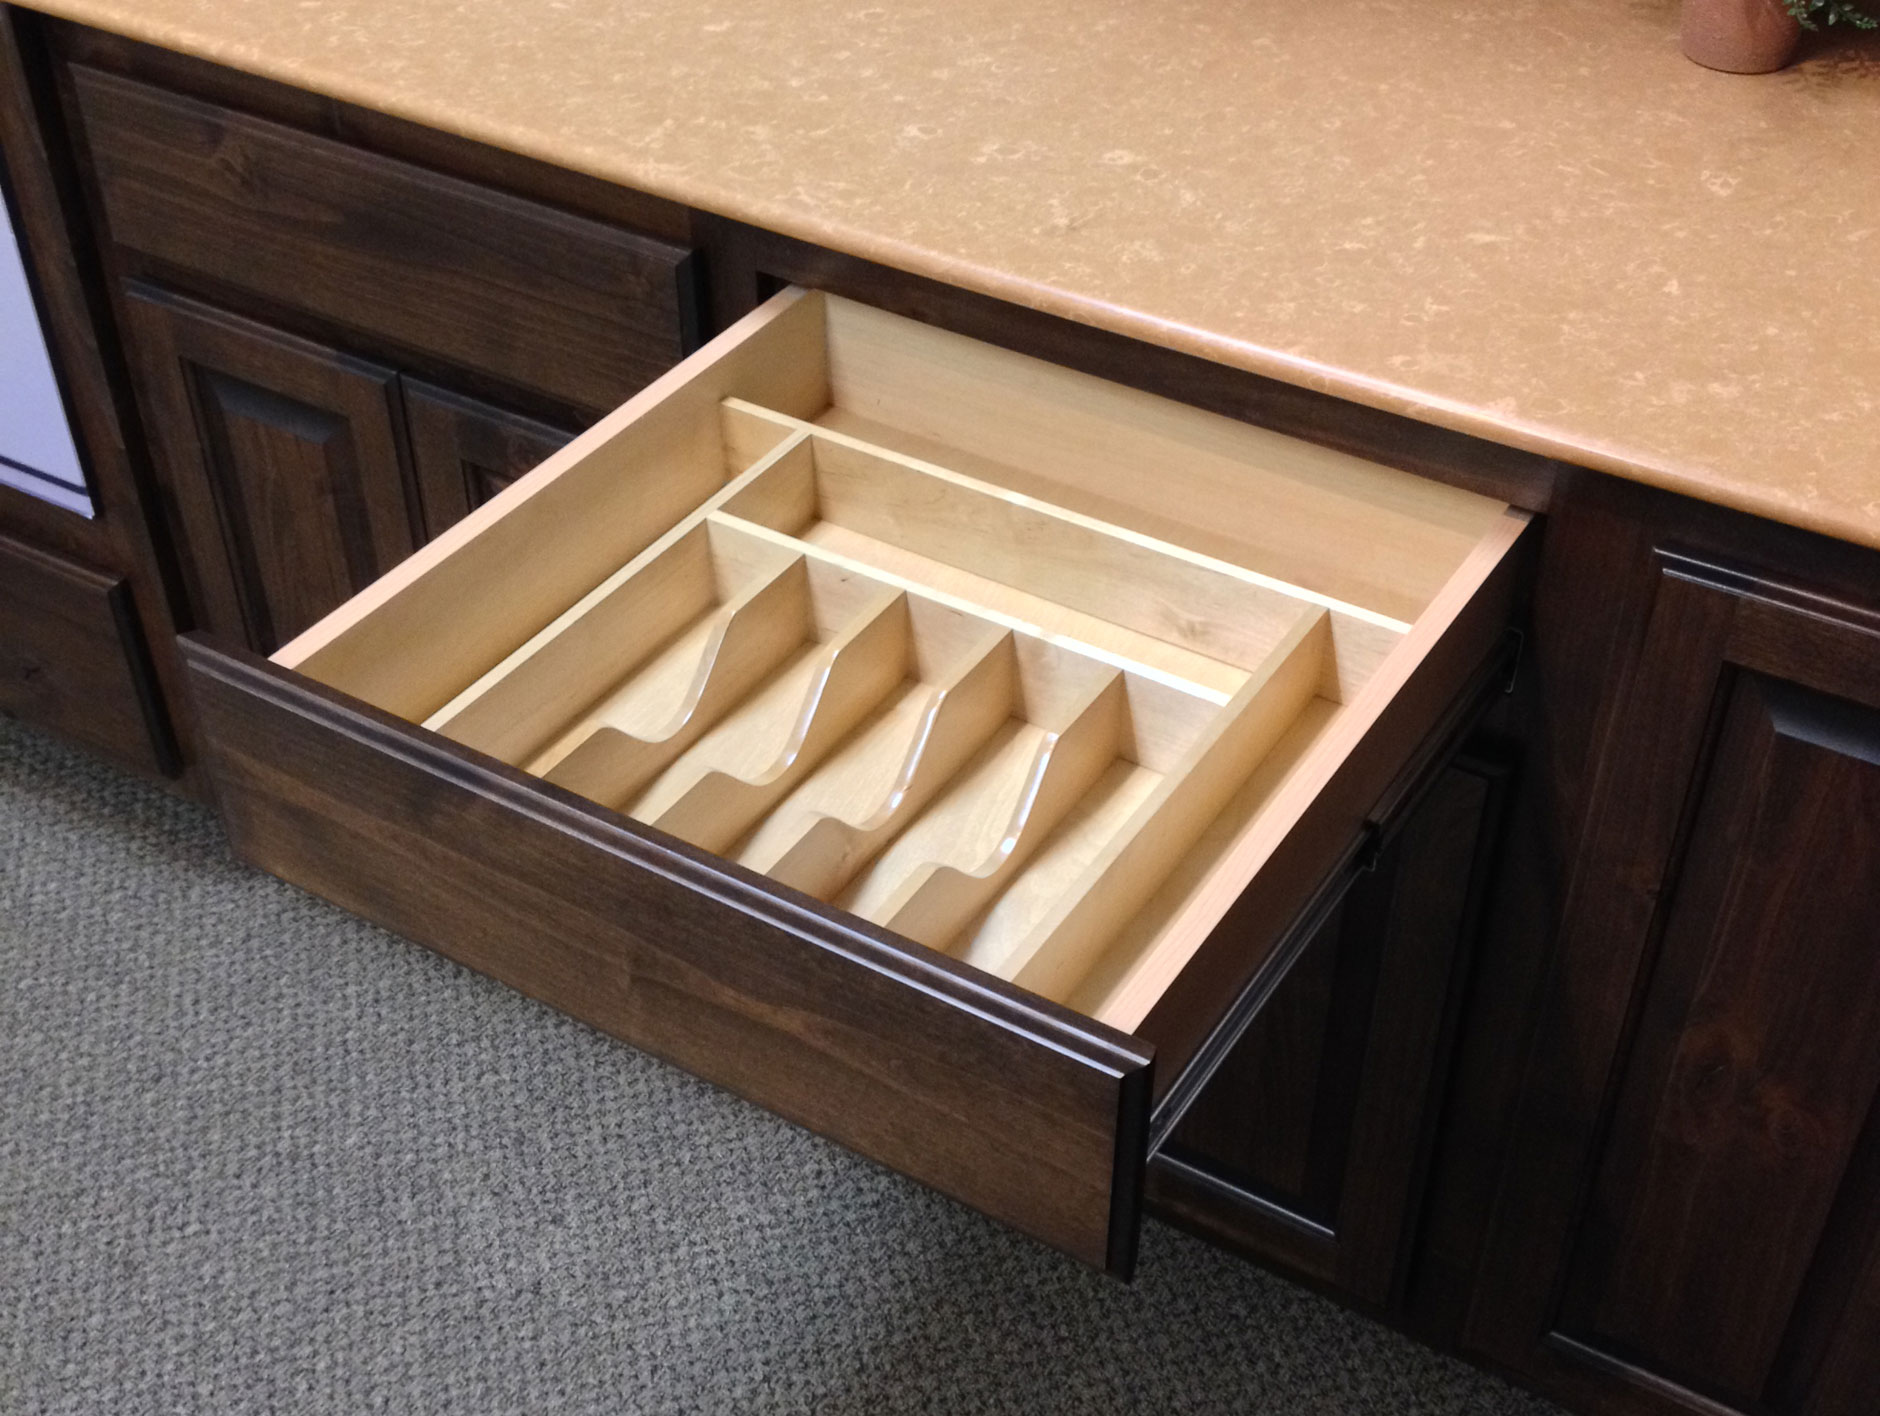 silverware and cutlery drawer insert - burrows cabinets